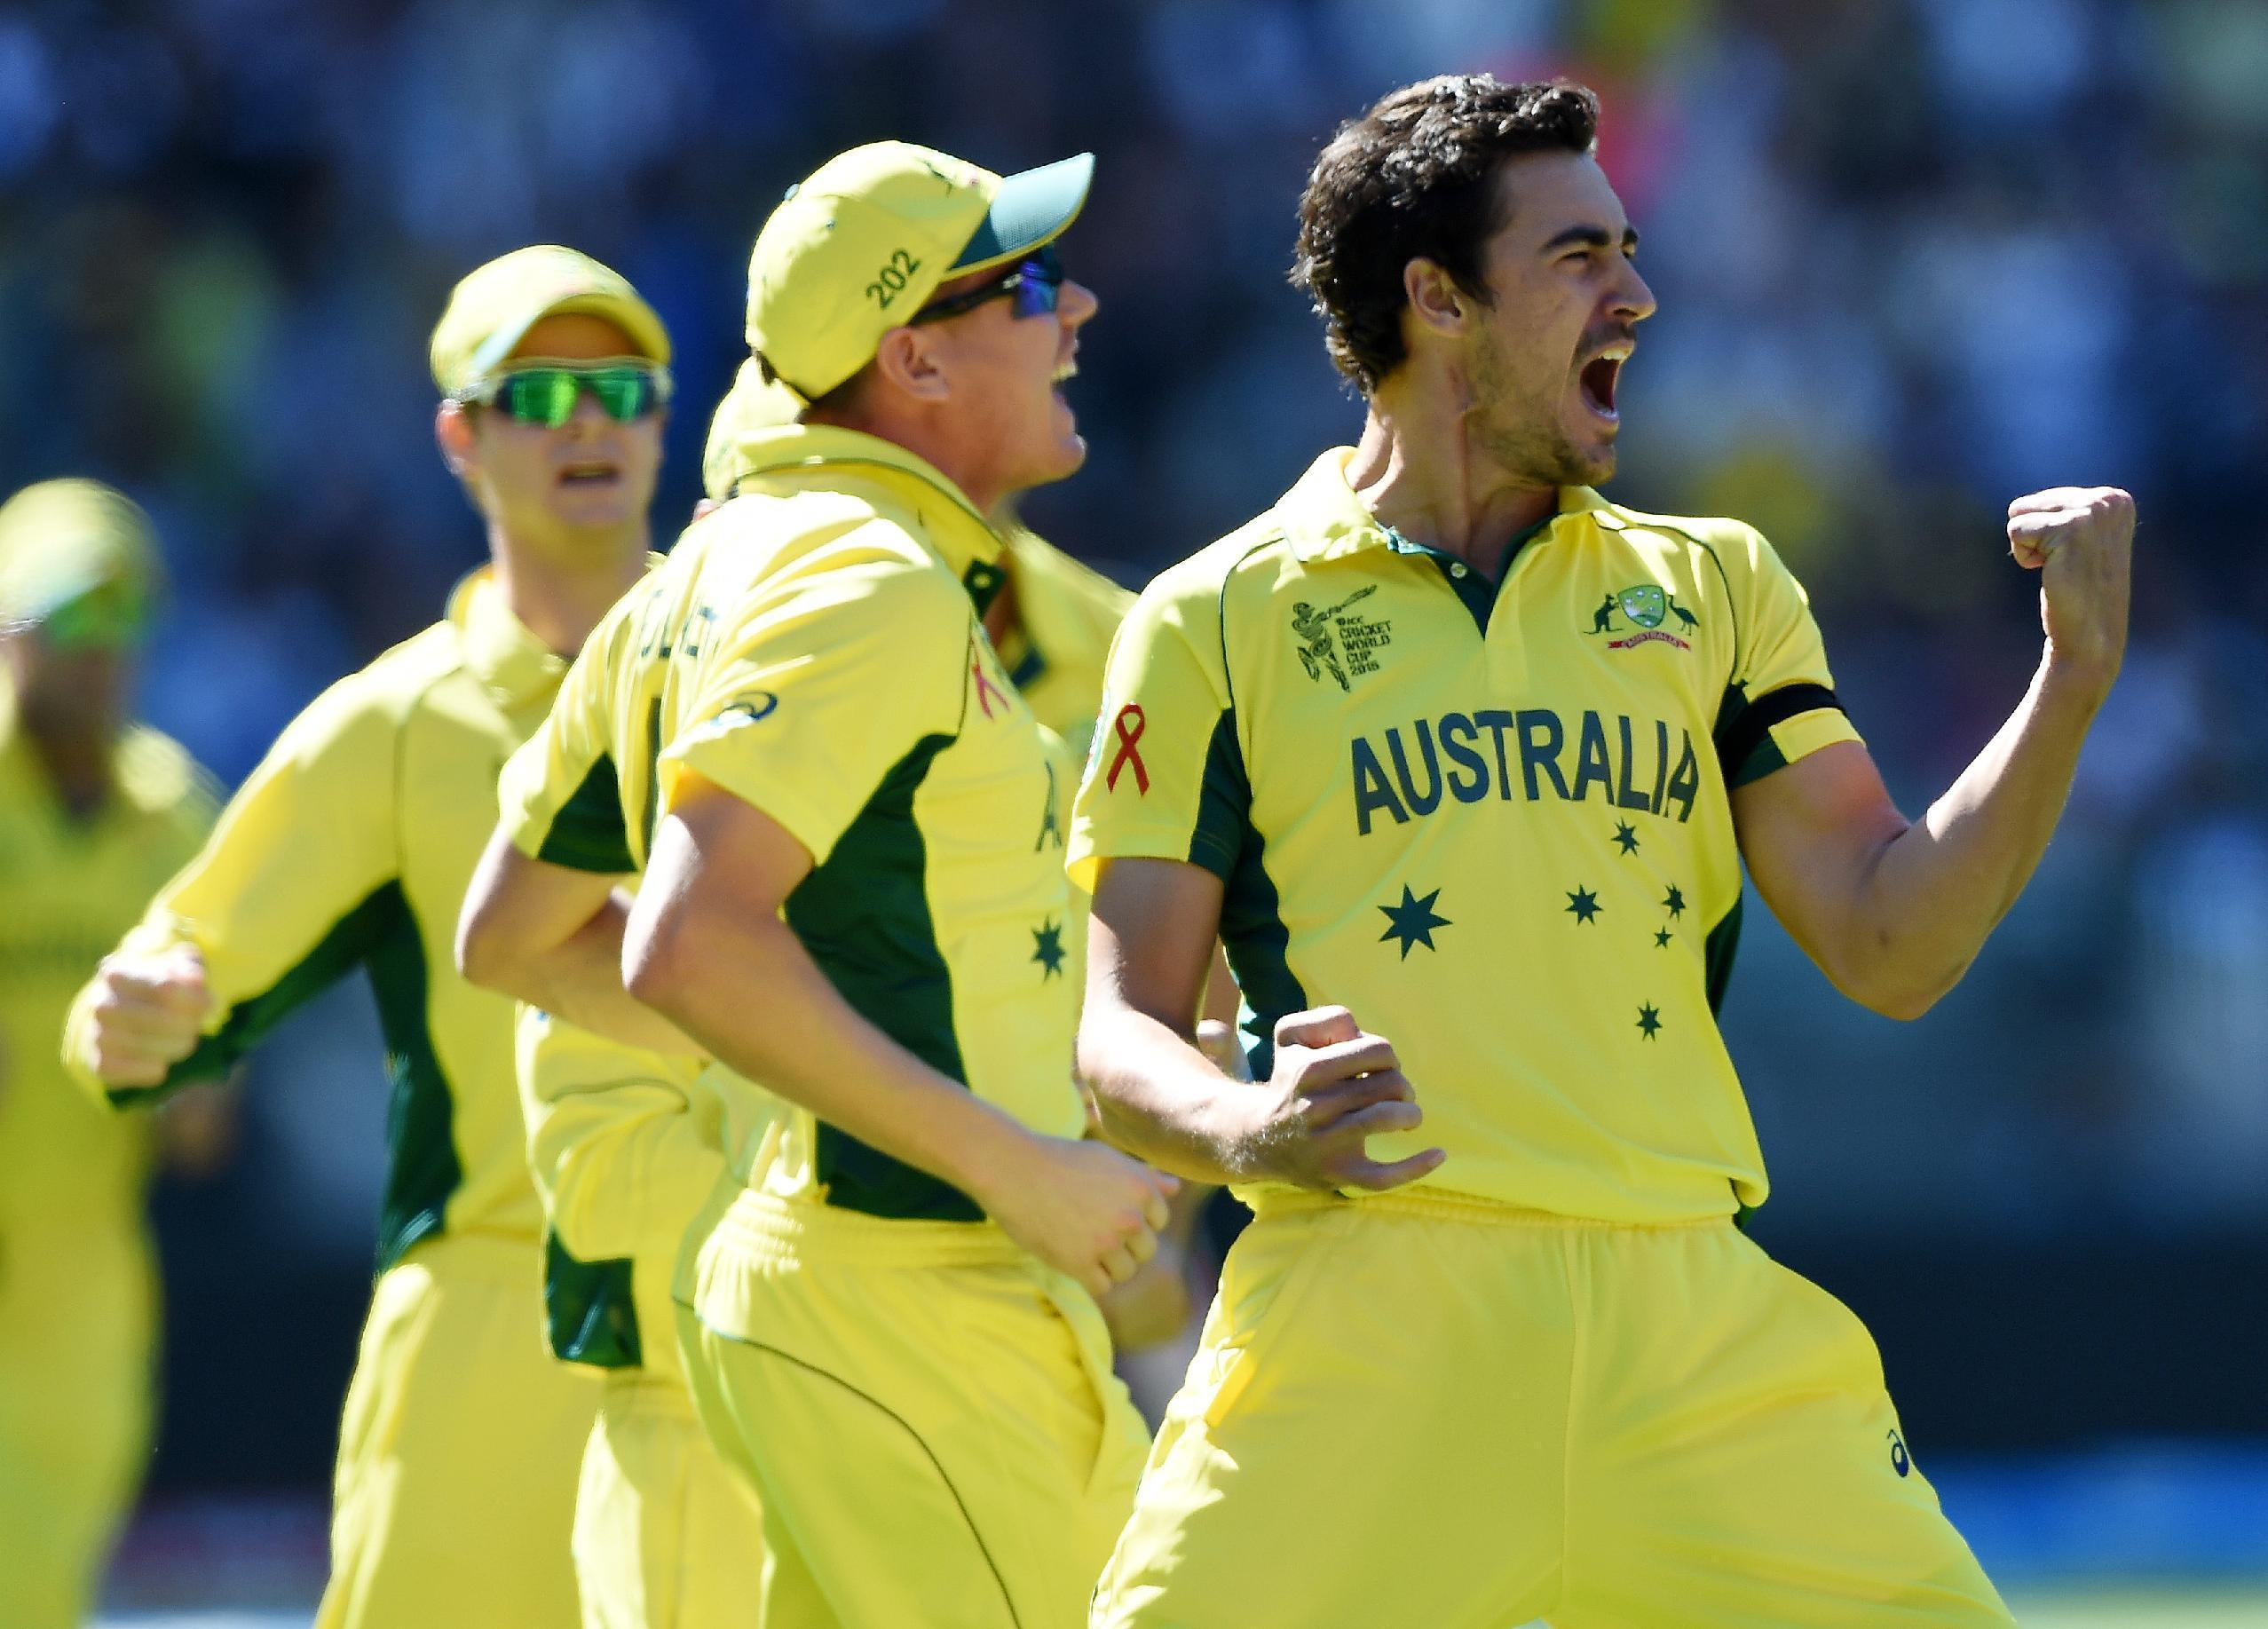 Australia beats NZ to win its 5th Cricket World Cup title